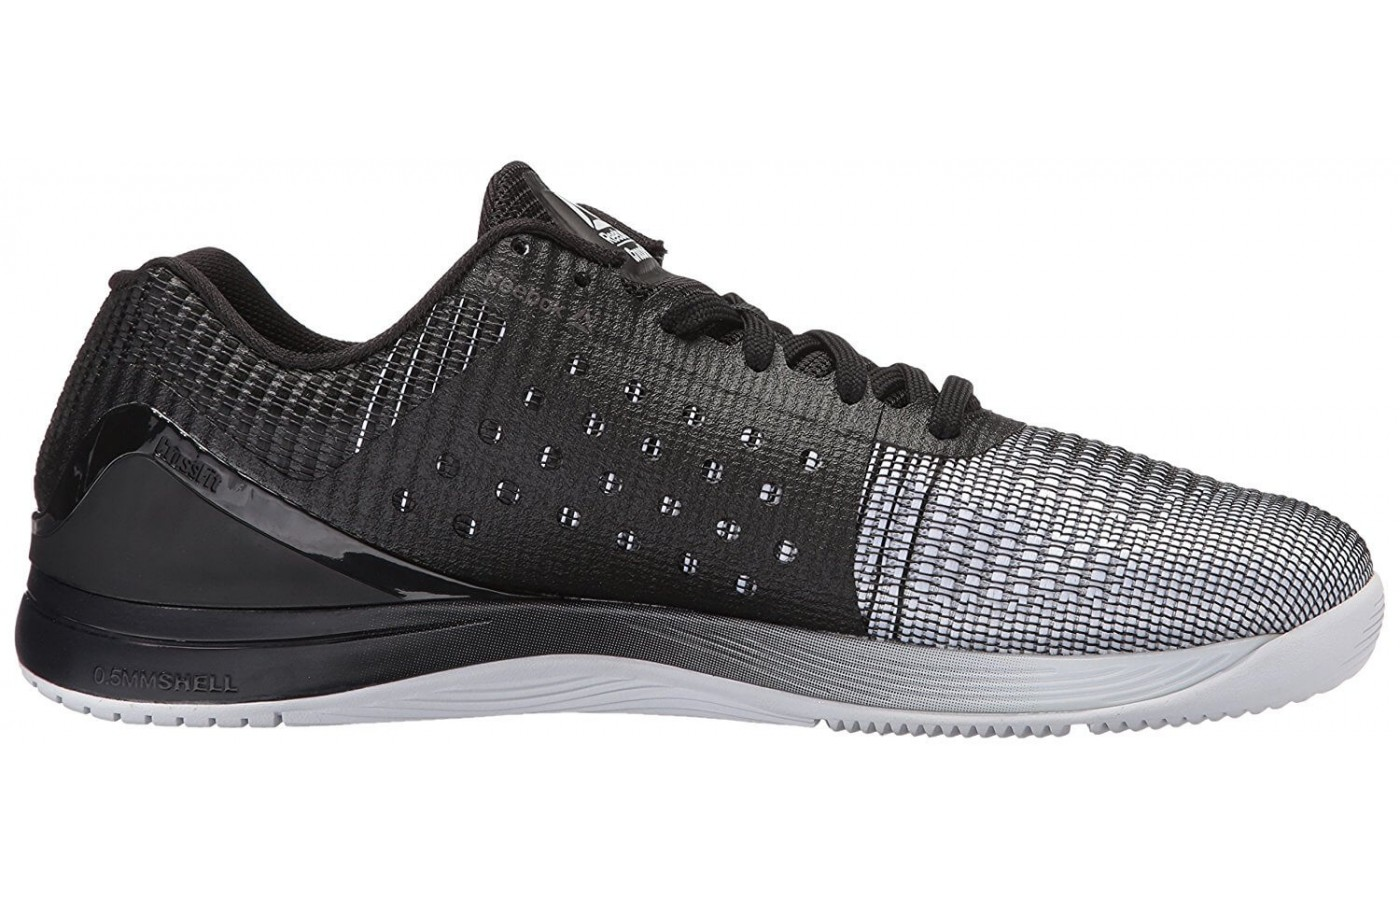 3fa0ab736c58 ... Compressed EVA midsole material ensures that the Reebok Crossfit Nano 7  Weave is somewhat supportive.